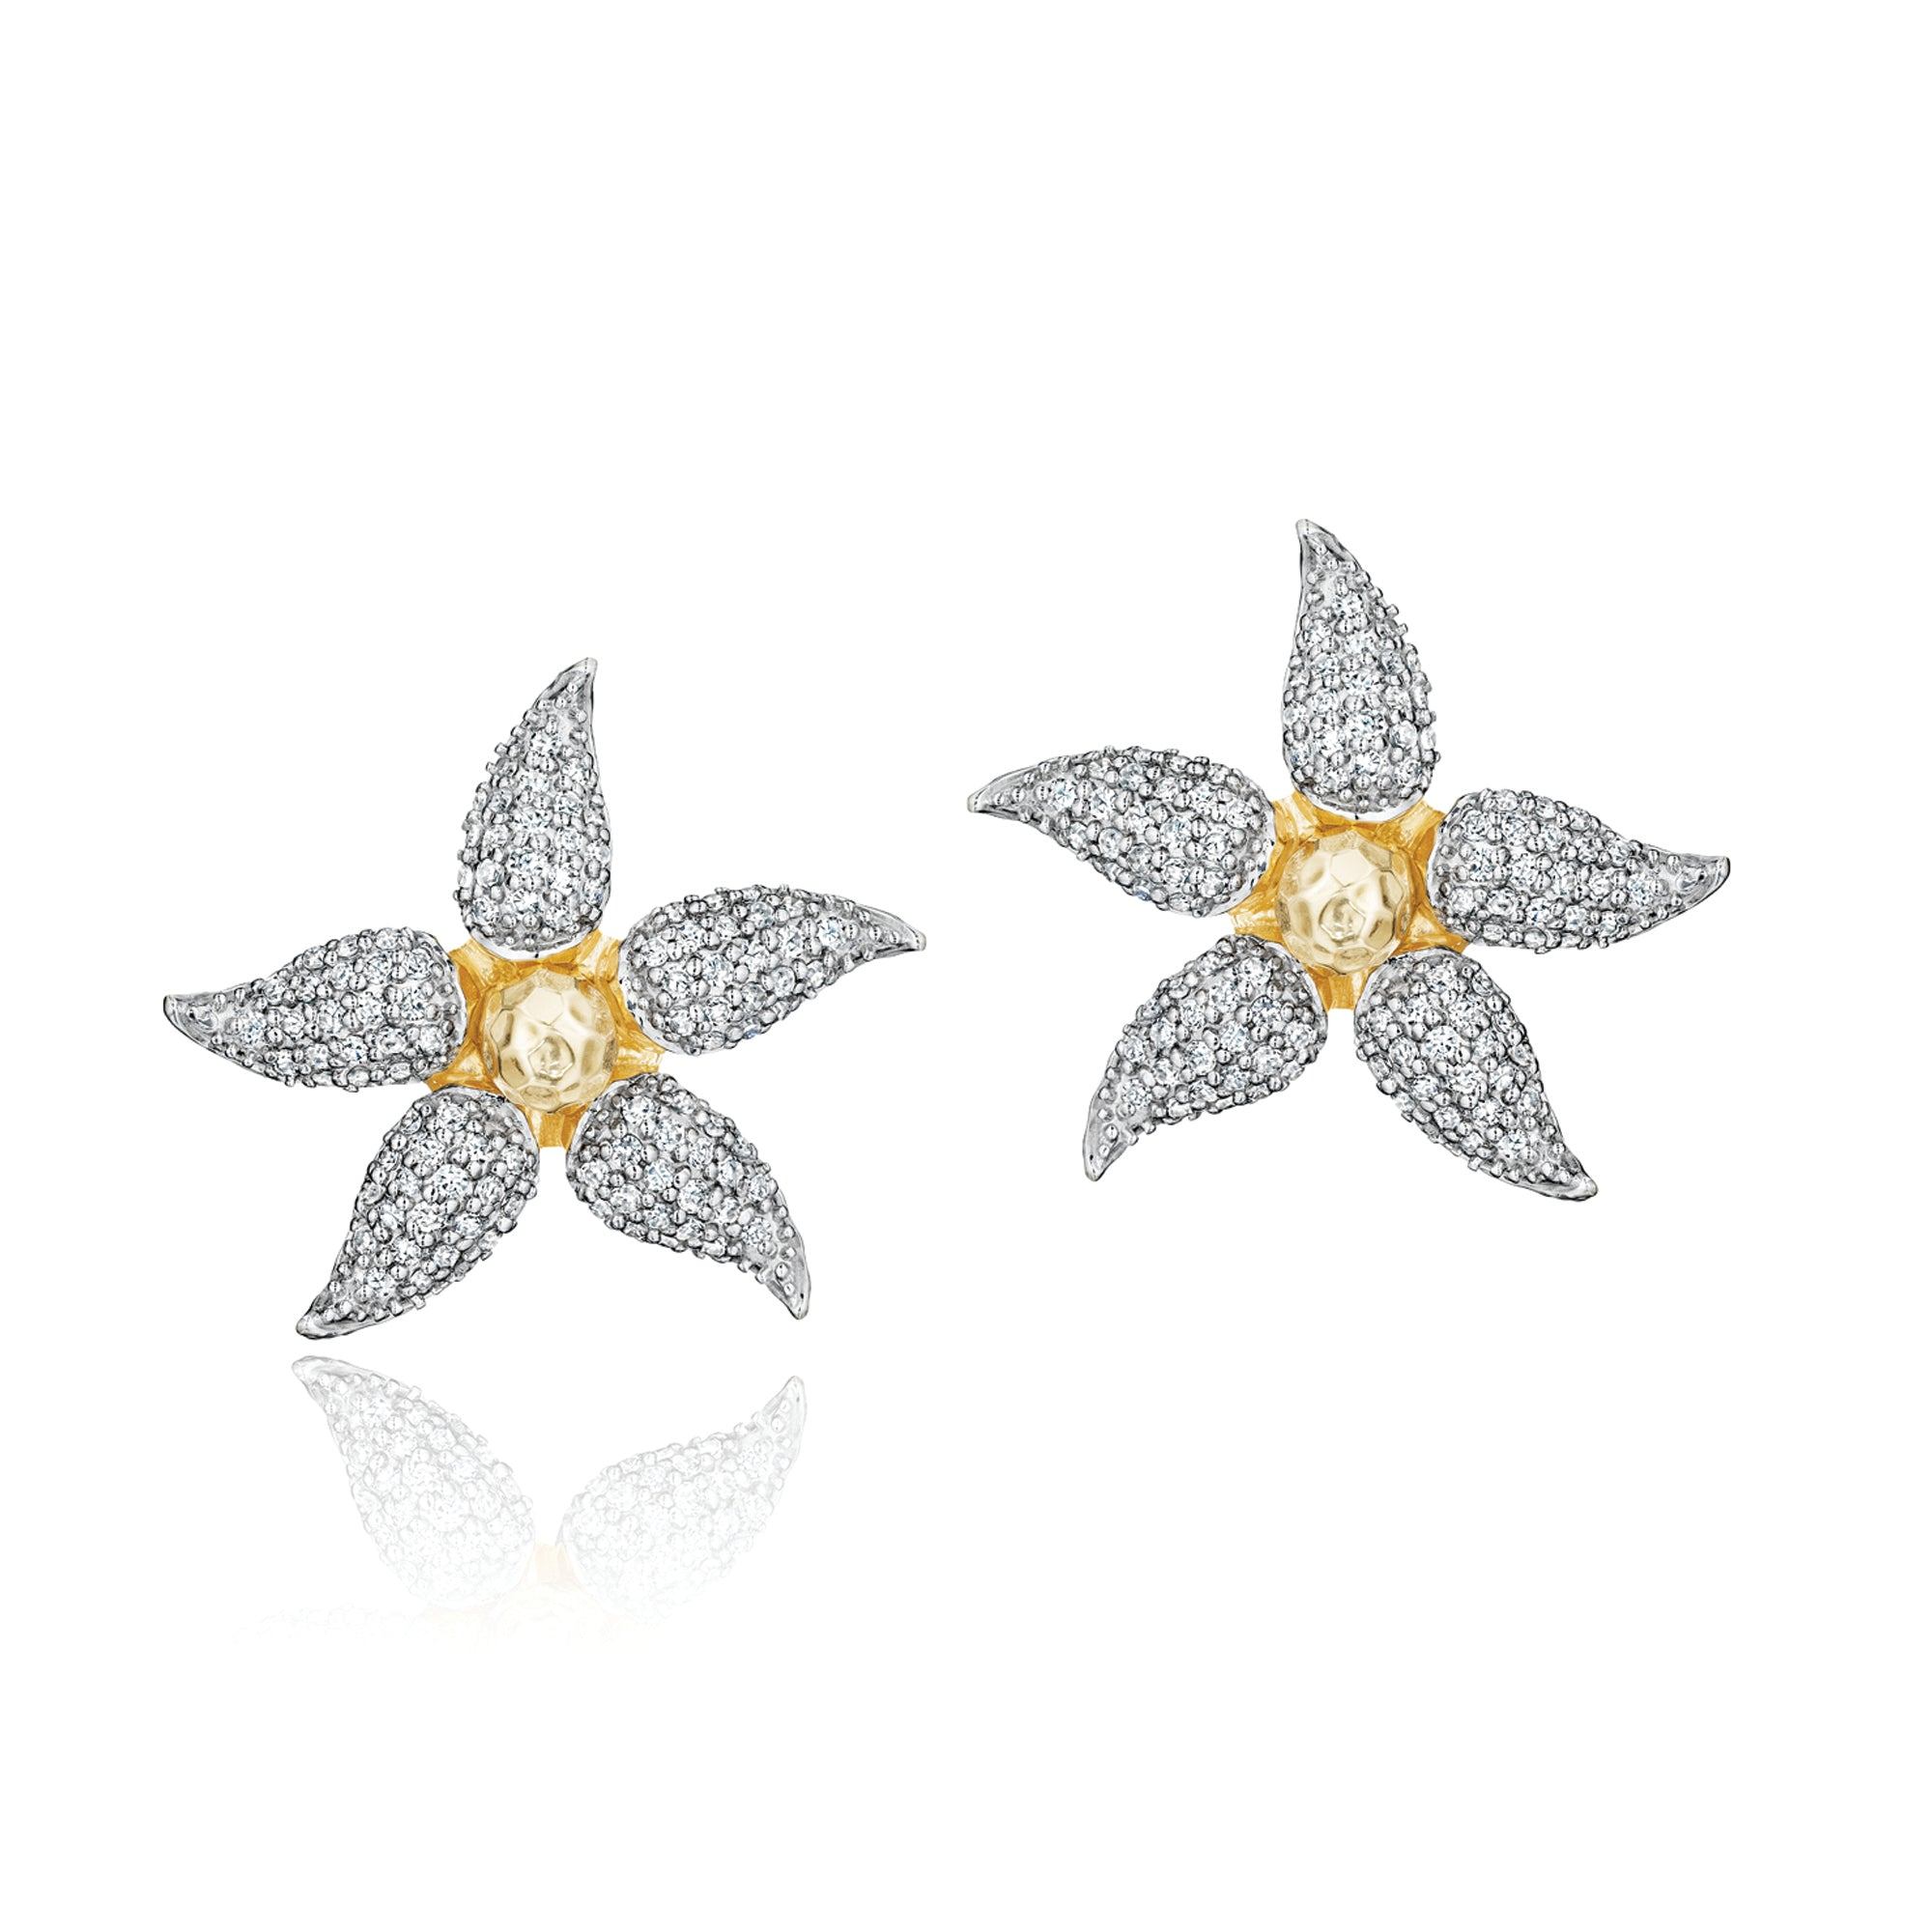 Phillips House floral studs in gold and diamonds